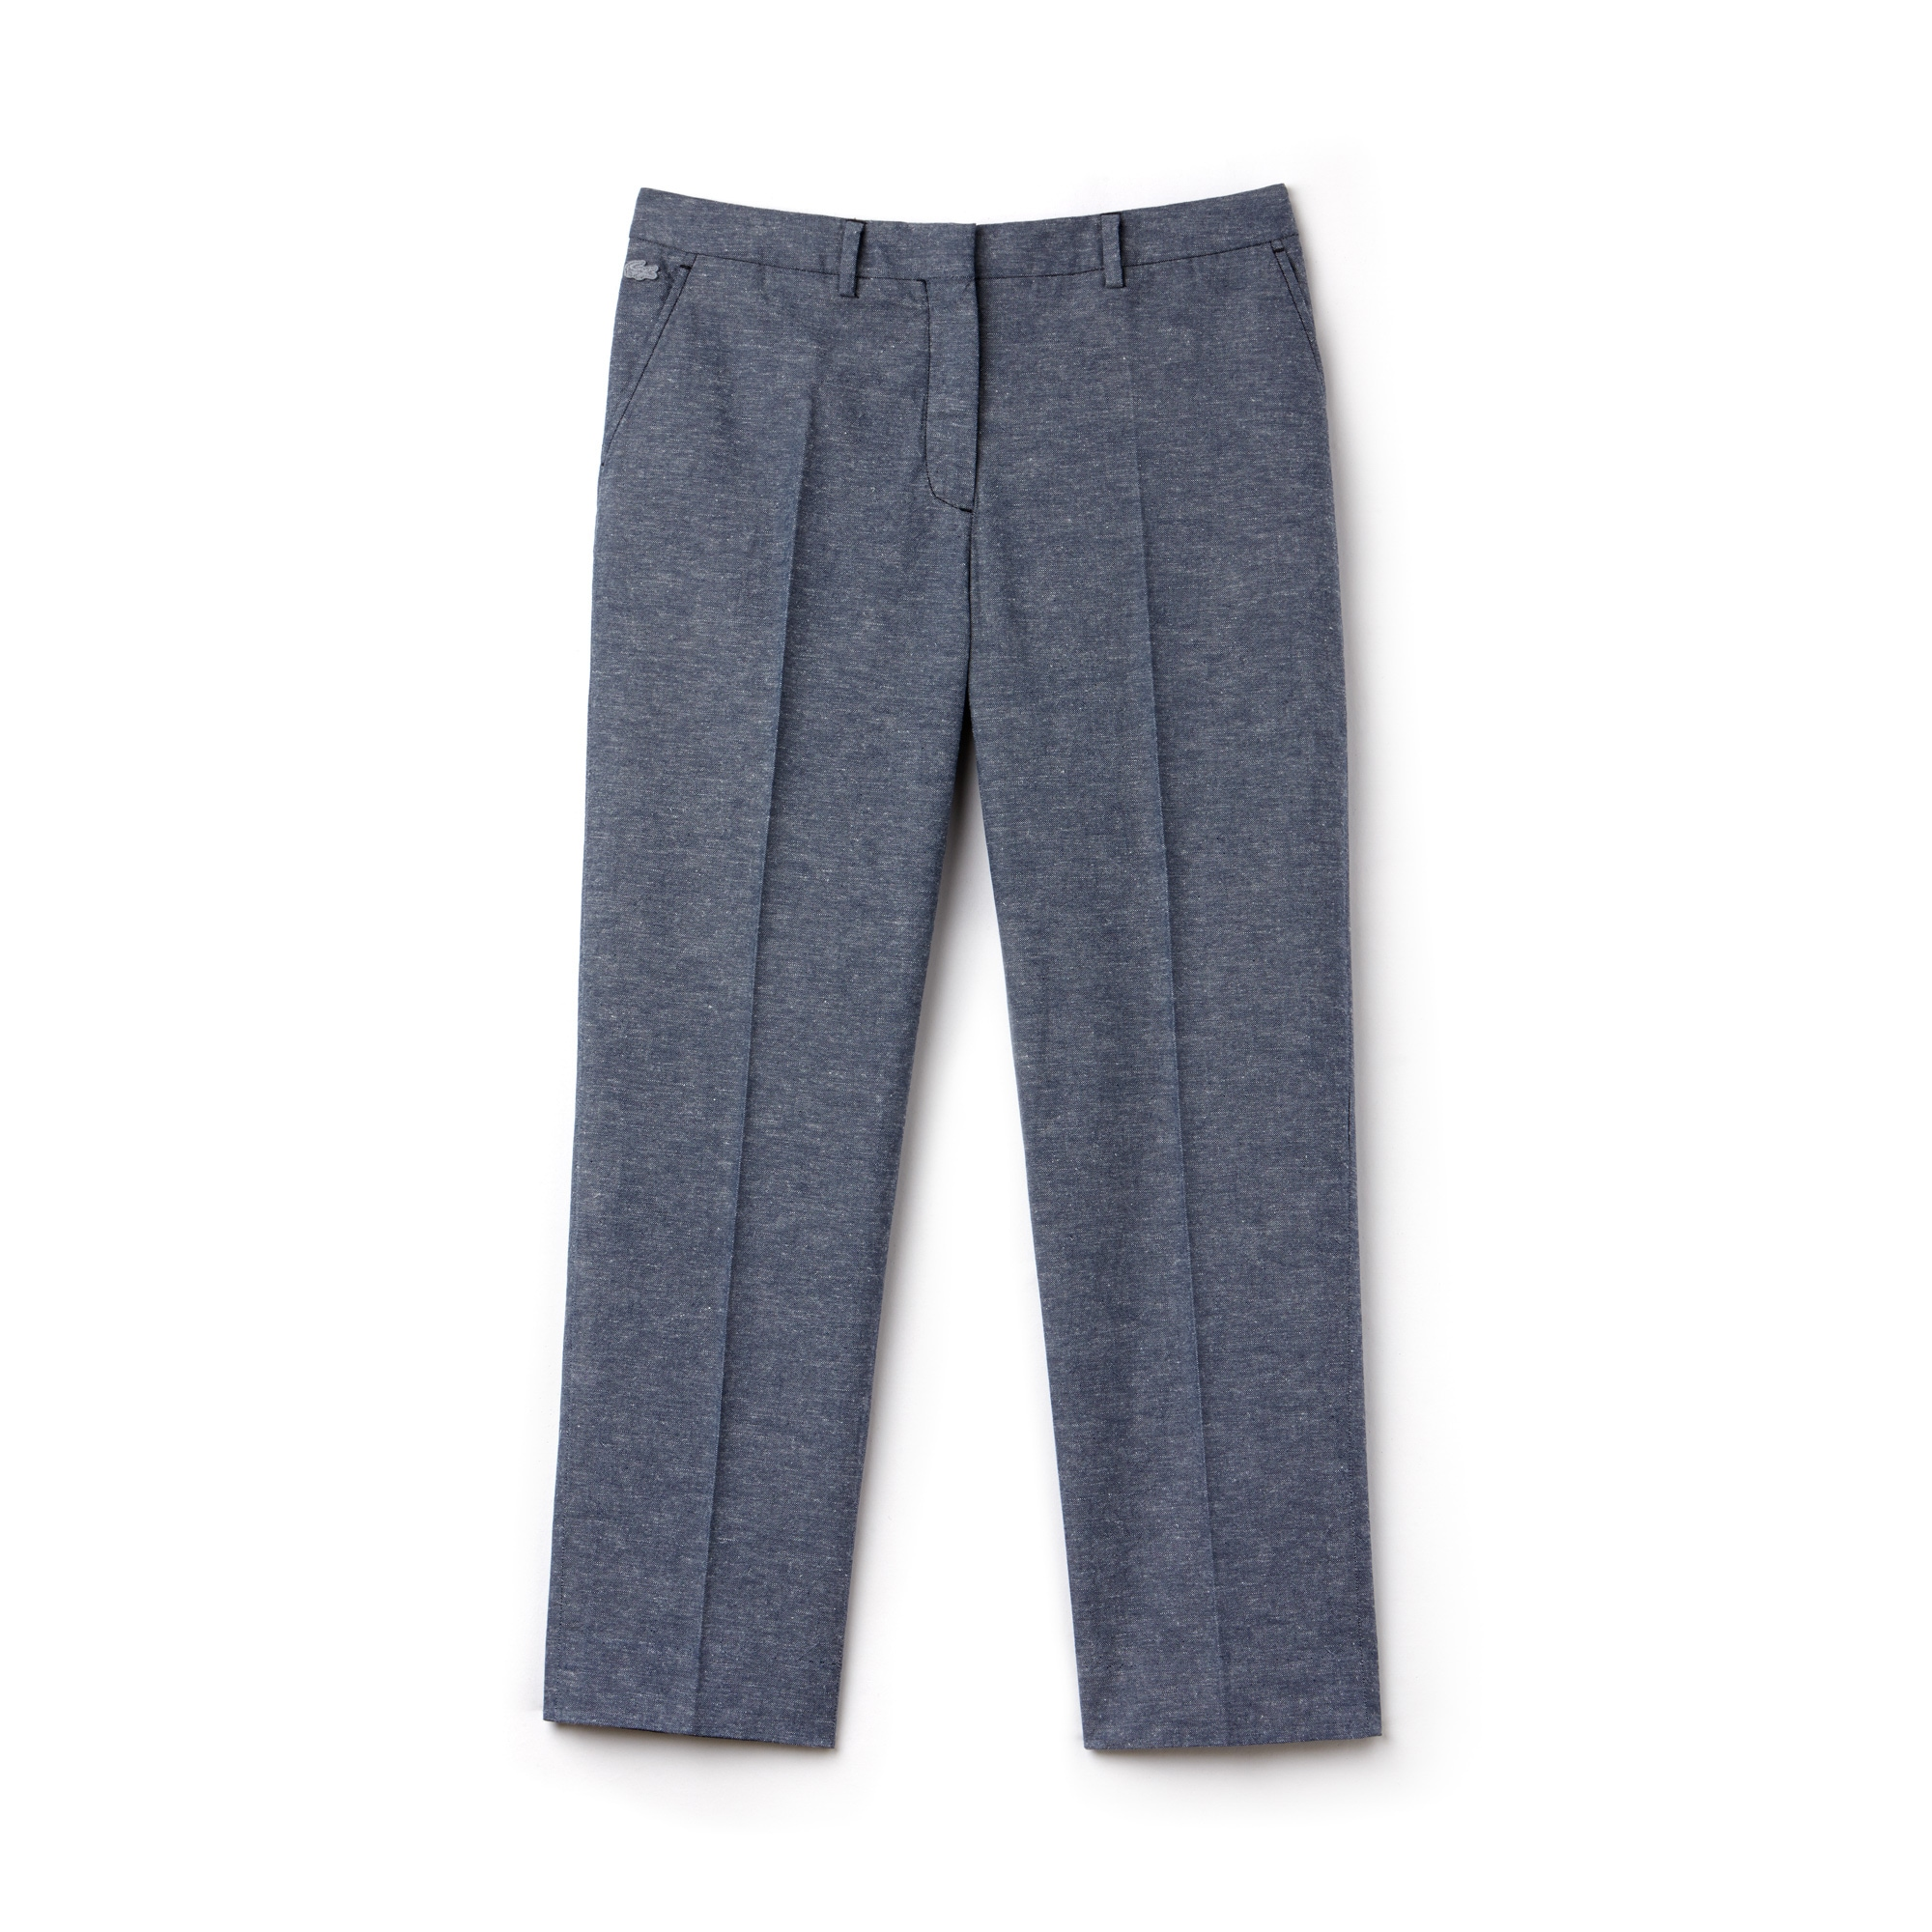 Pantaloni con pince Lacoste LIVE in chambray